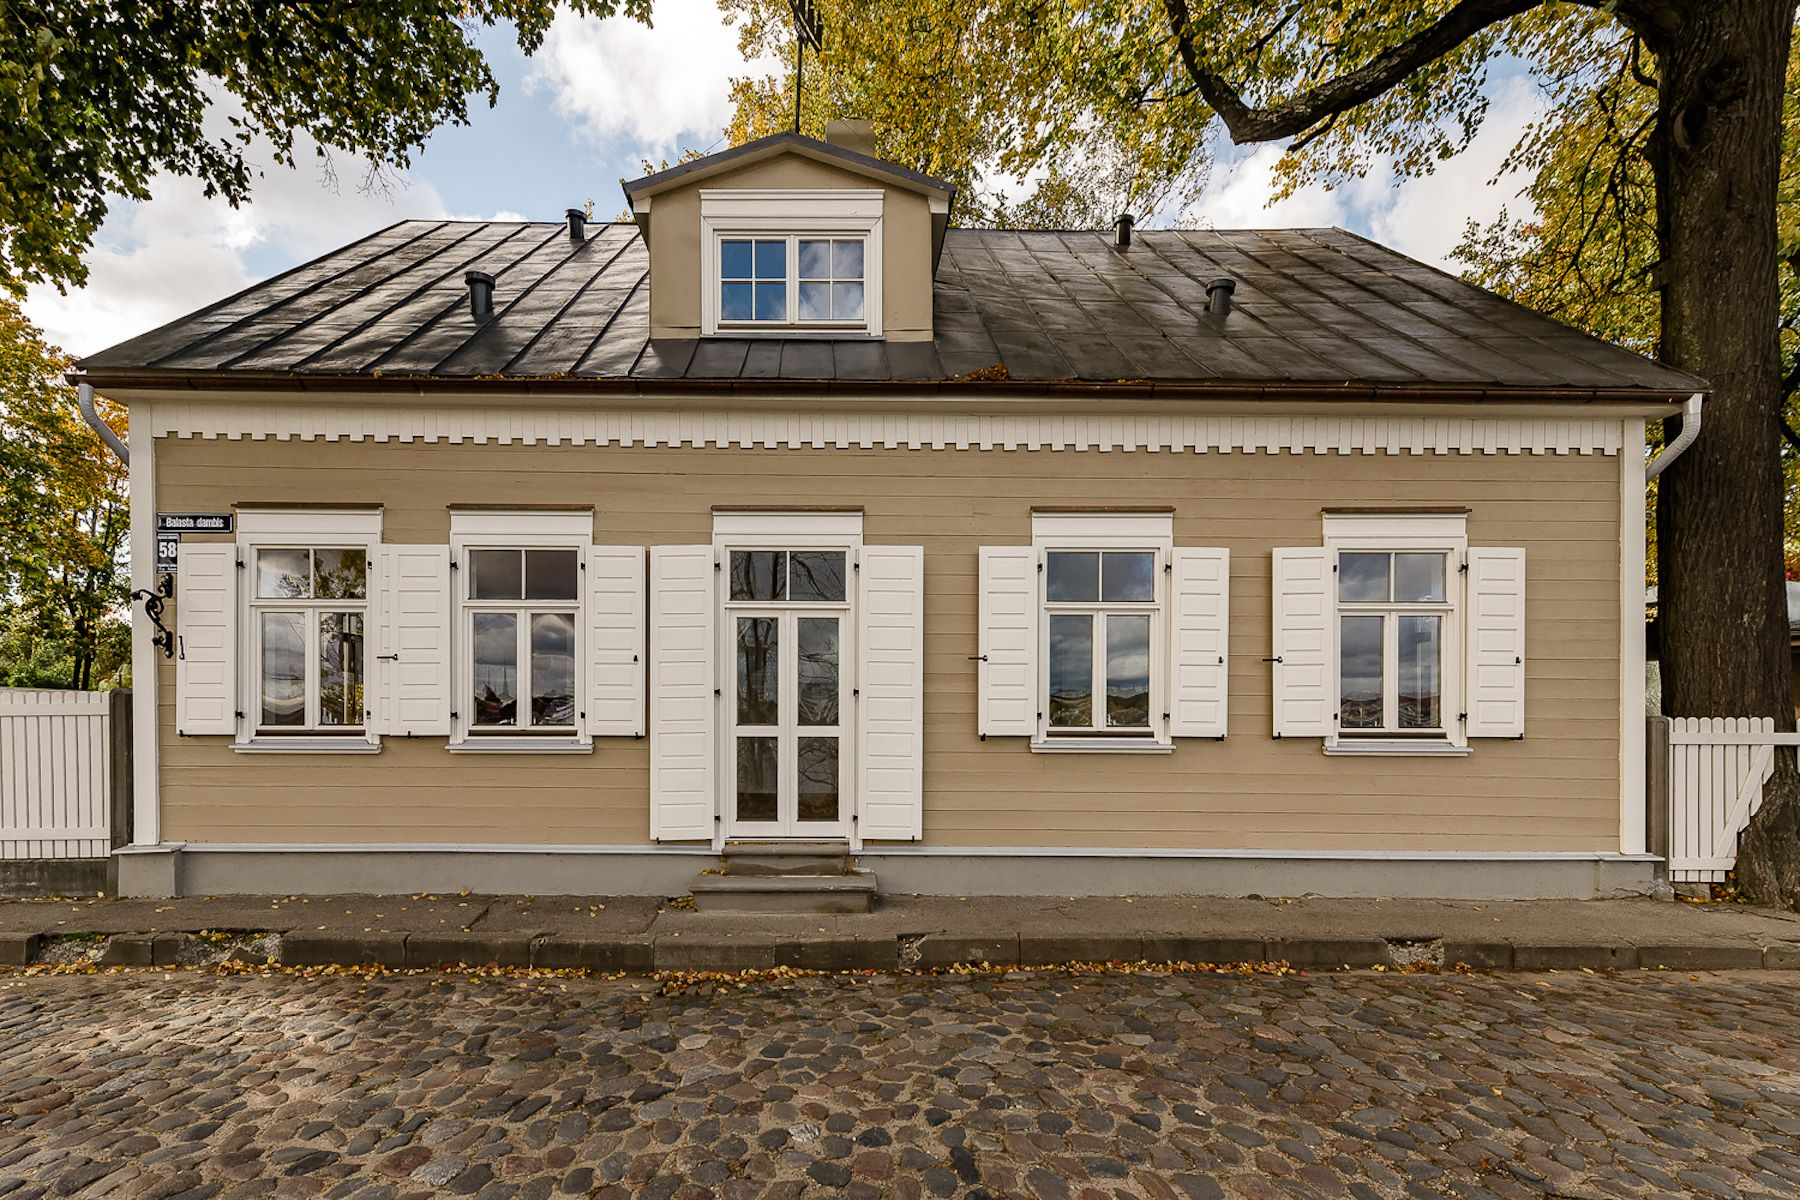 Single Family Home for Sale at Excellent house of wooden architecture in Kipsala Riga, Other Areas In Latvia, Latvia